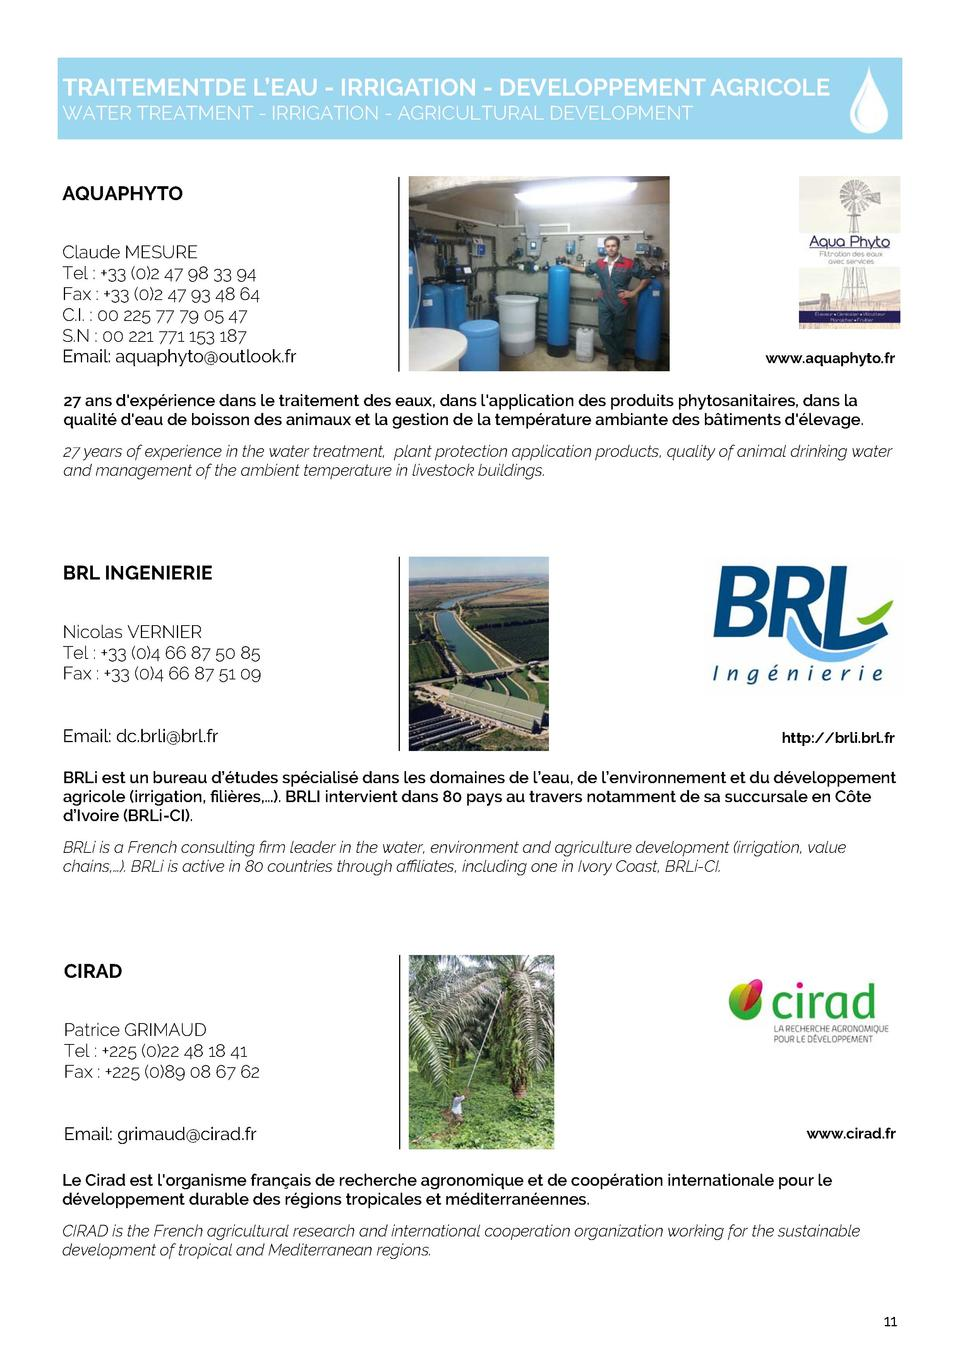 TRAITEMENTDE L   EAU - IRRIGATION - DEVELOPPEMENT AGRICOLE WATER TREATMENT - IRRIGATION - AGRICULTURAL DEVELOPMENT  AQUAPH...